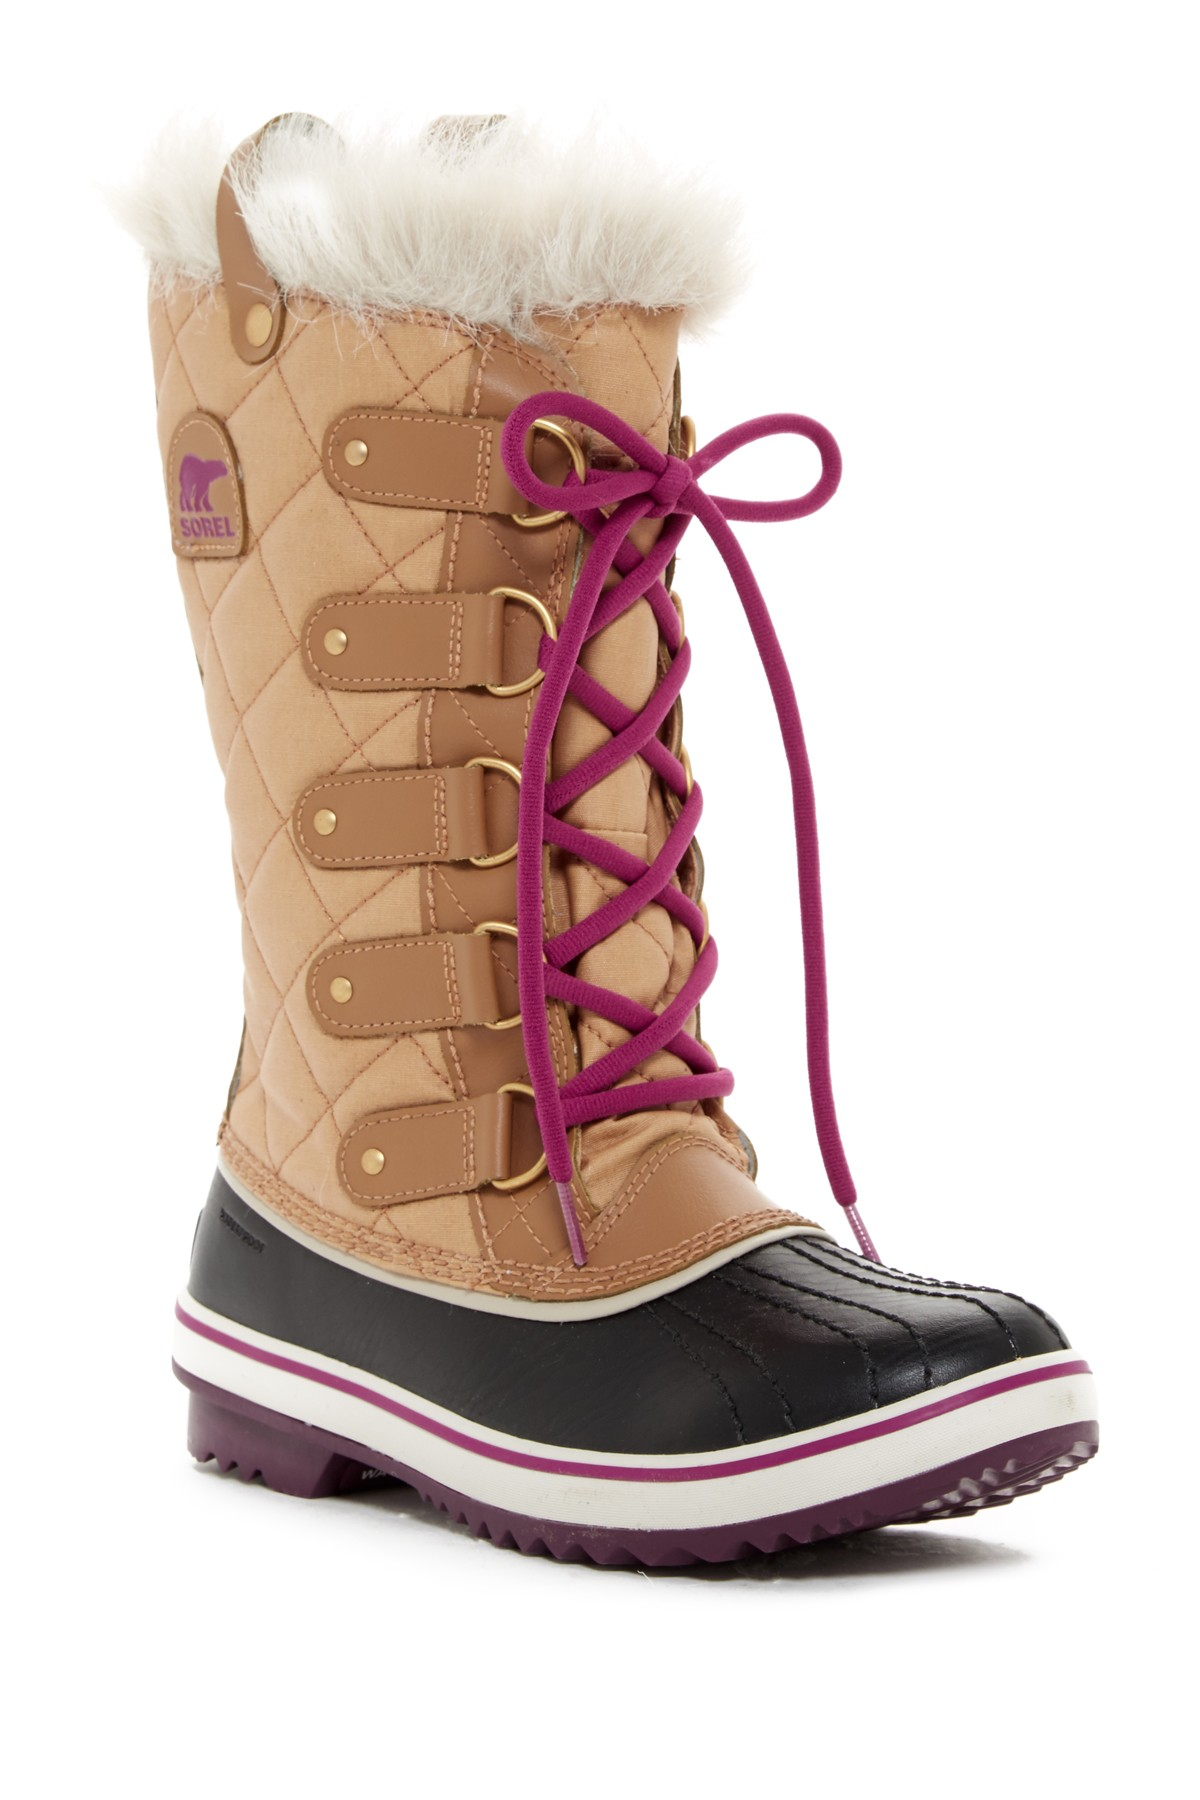 Sorel Tofino Cate Faux Fur Lace Up Boot Waterproof In